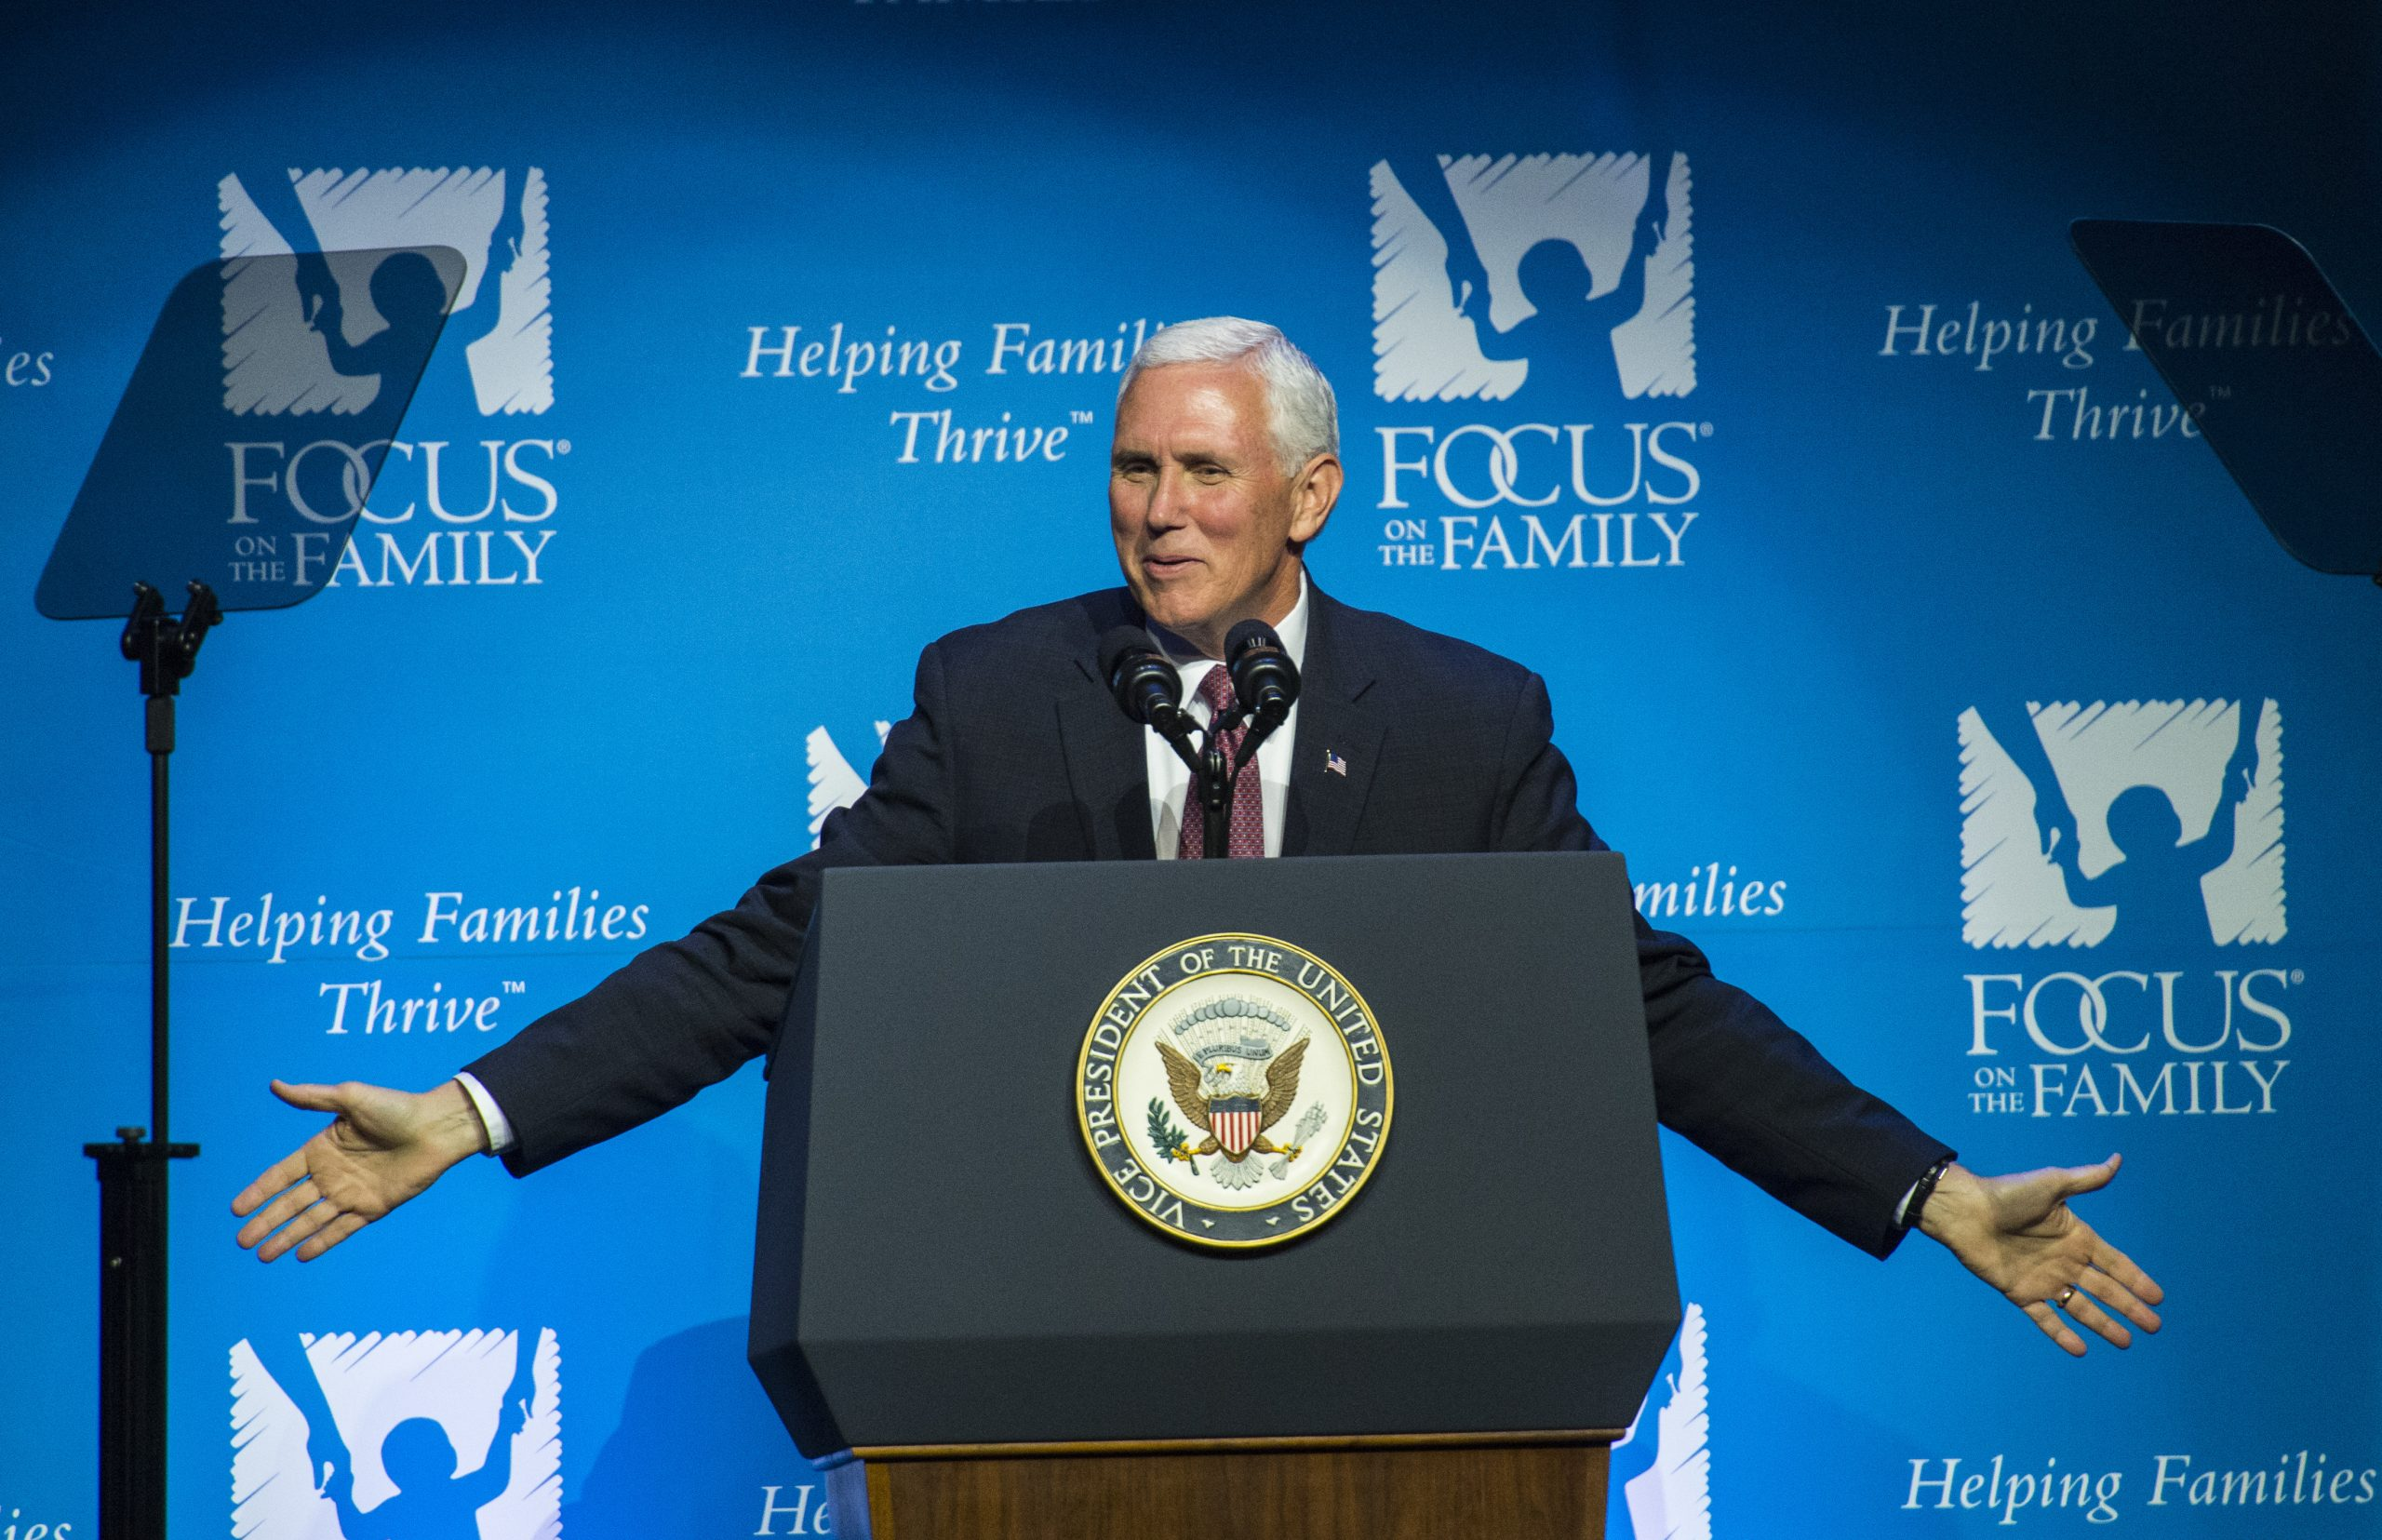 Pence Focus on the Family